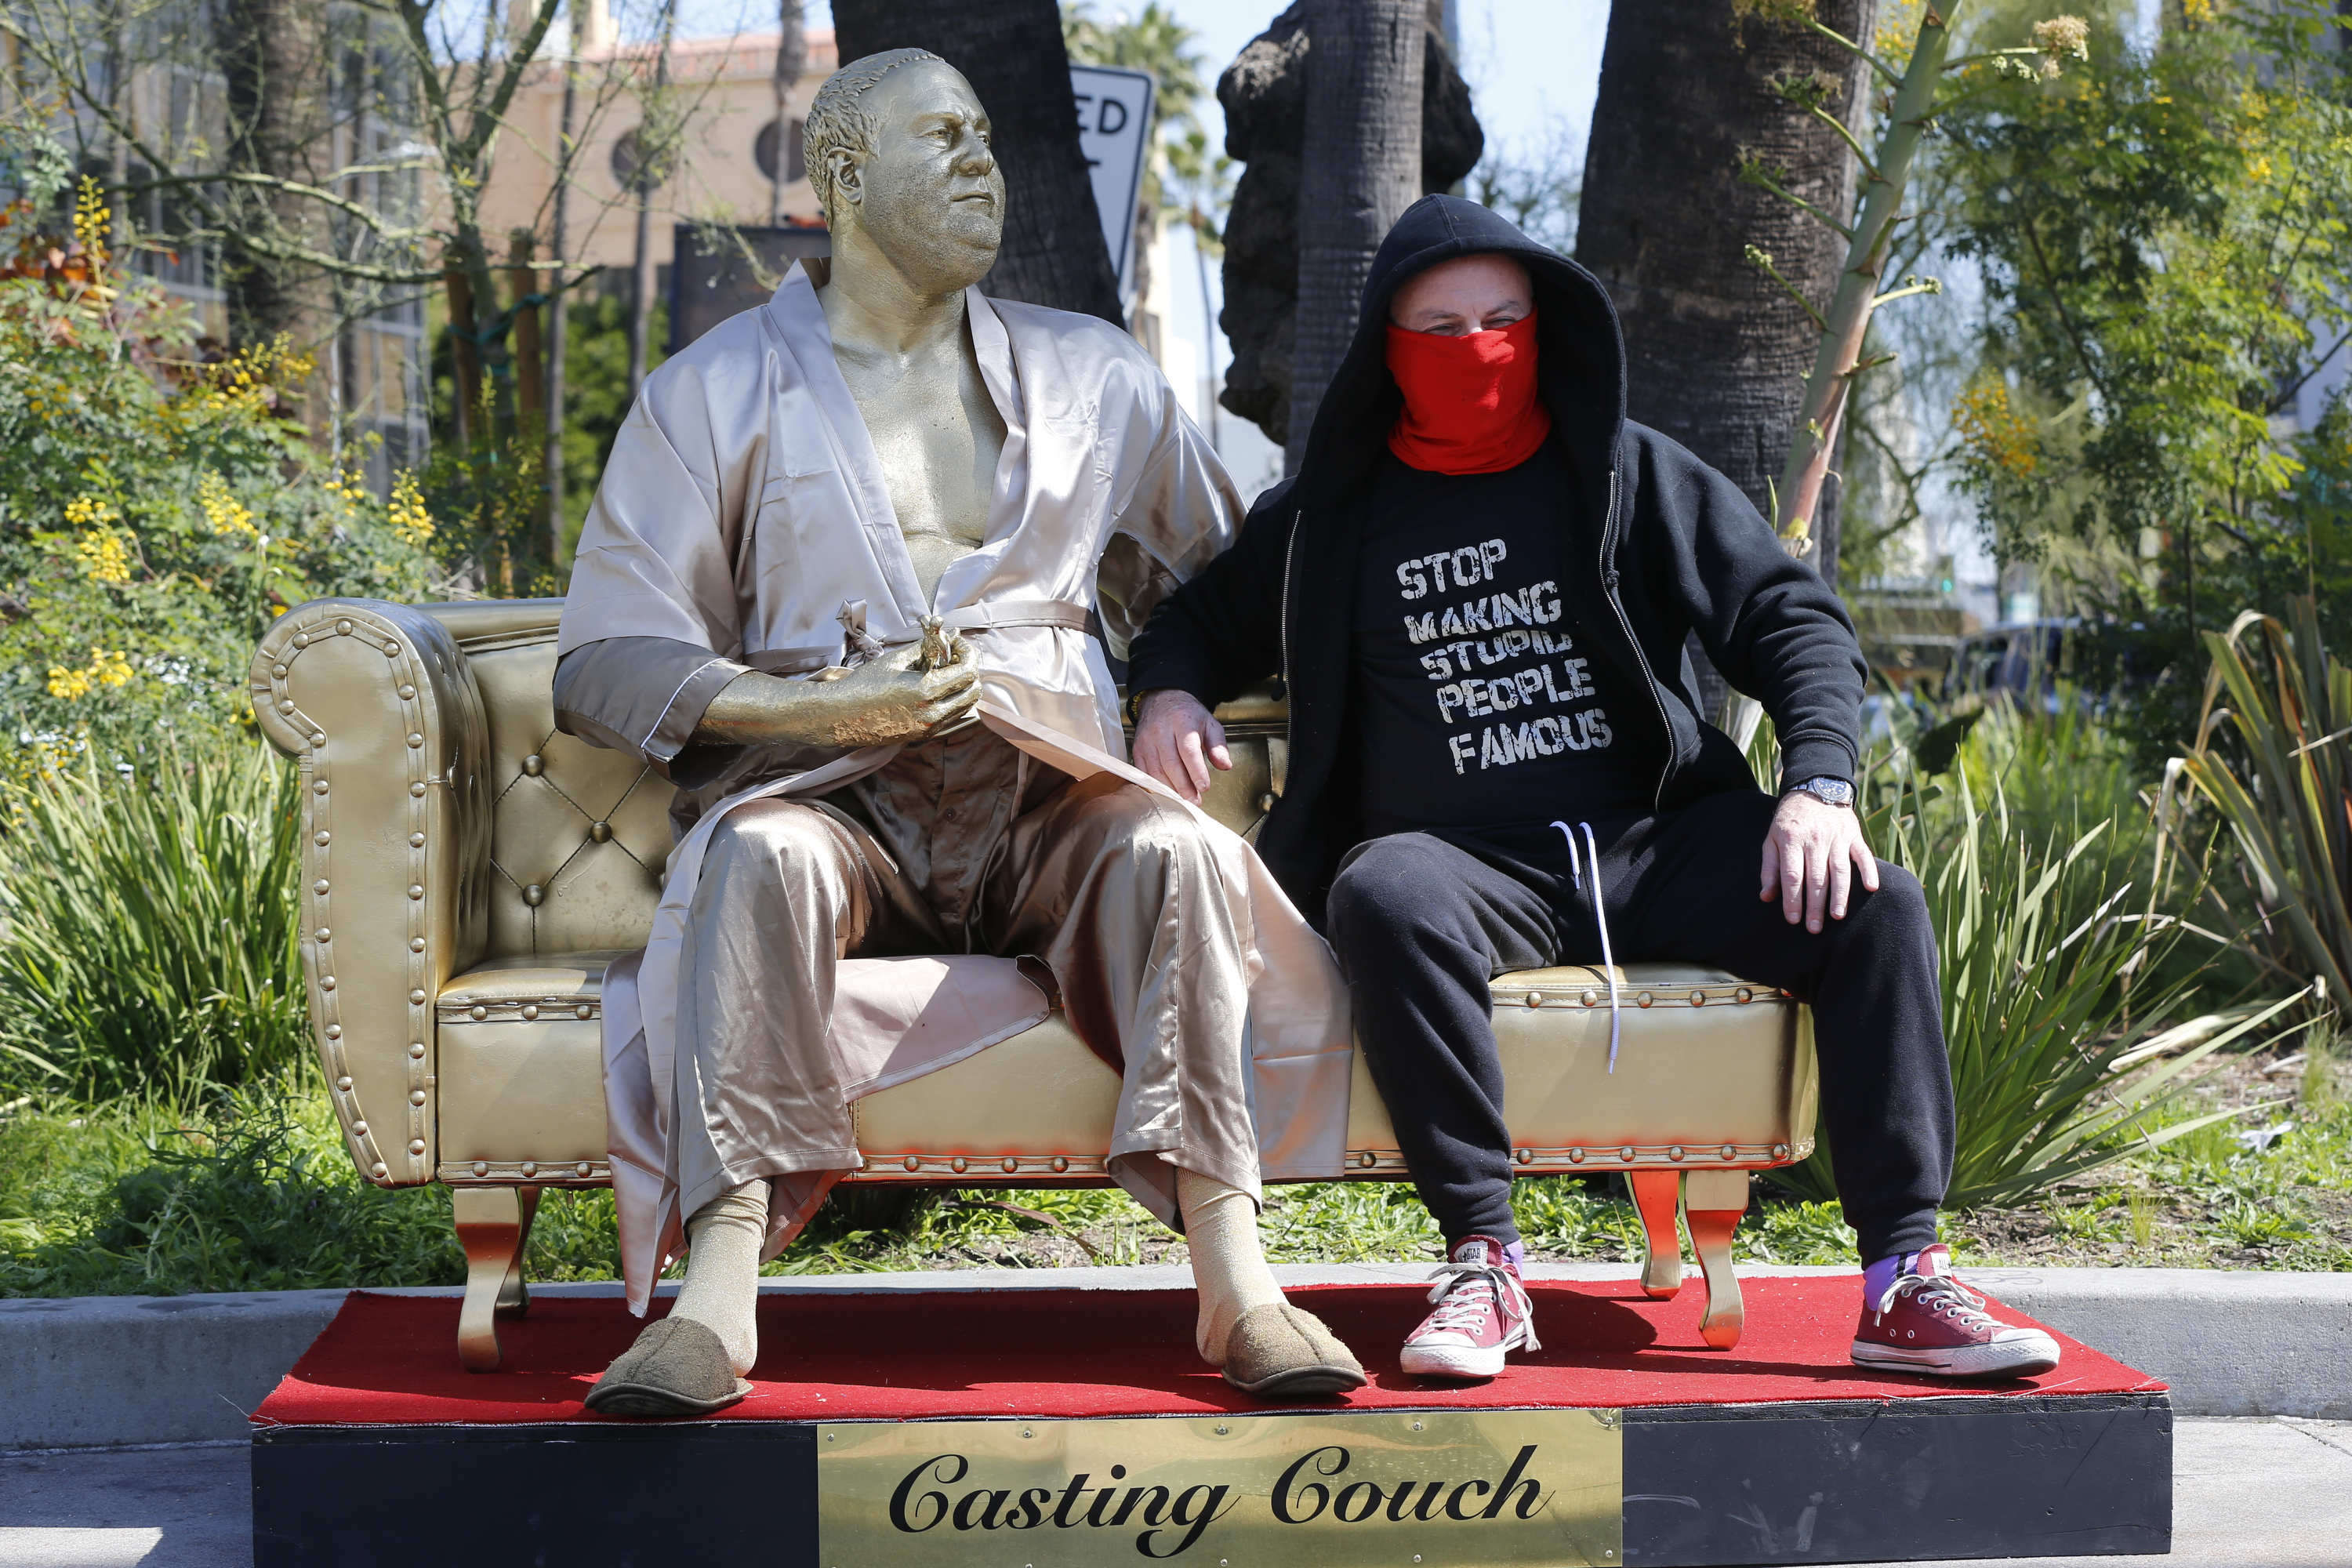 Harvey Weinstein Casting Couch Statue Erected Near Oscar Venue